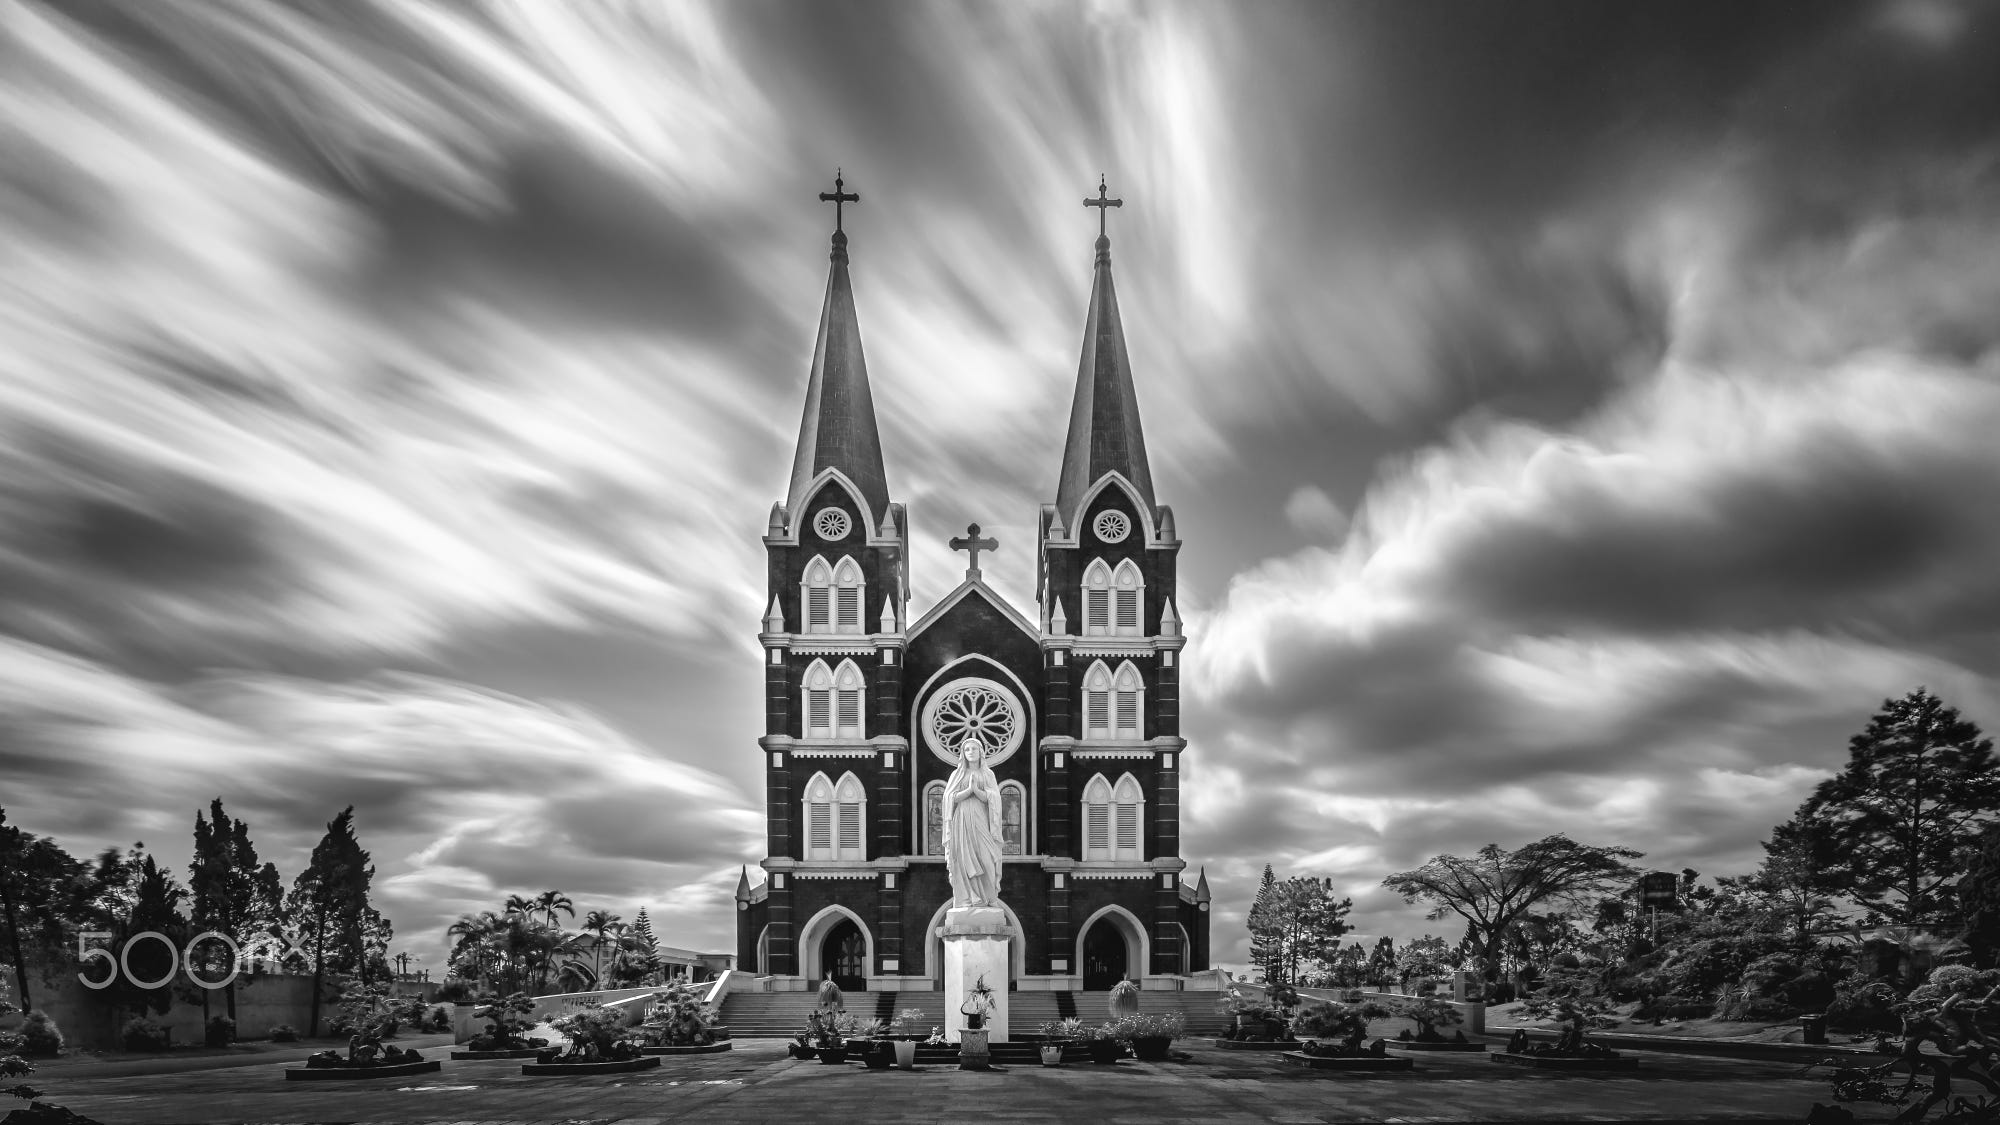 Captured with the IRix 15mm and a 16-stop ND filter. ©Bombo Photo, All rights reserved.